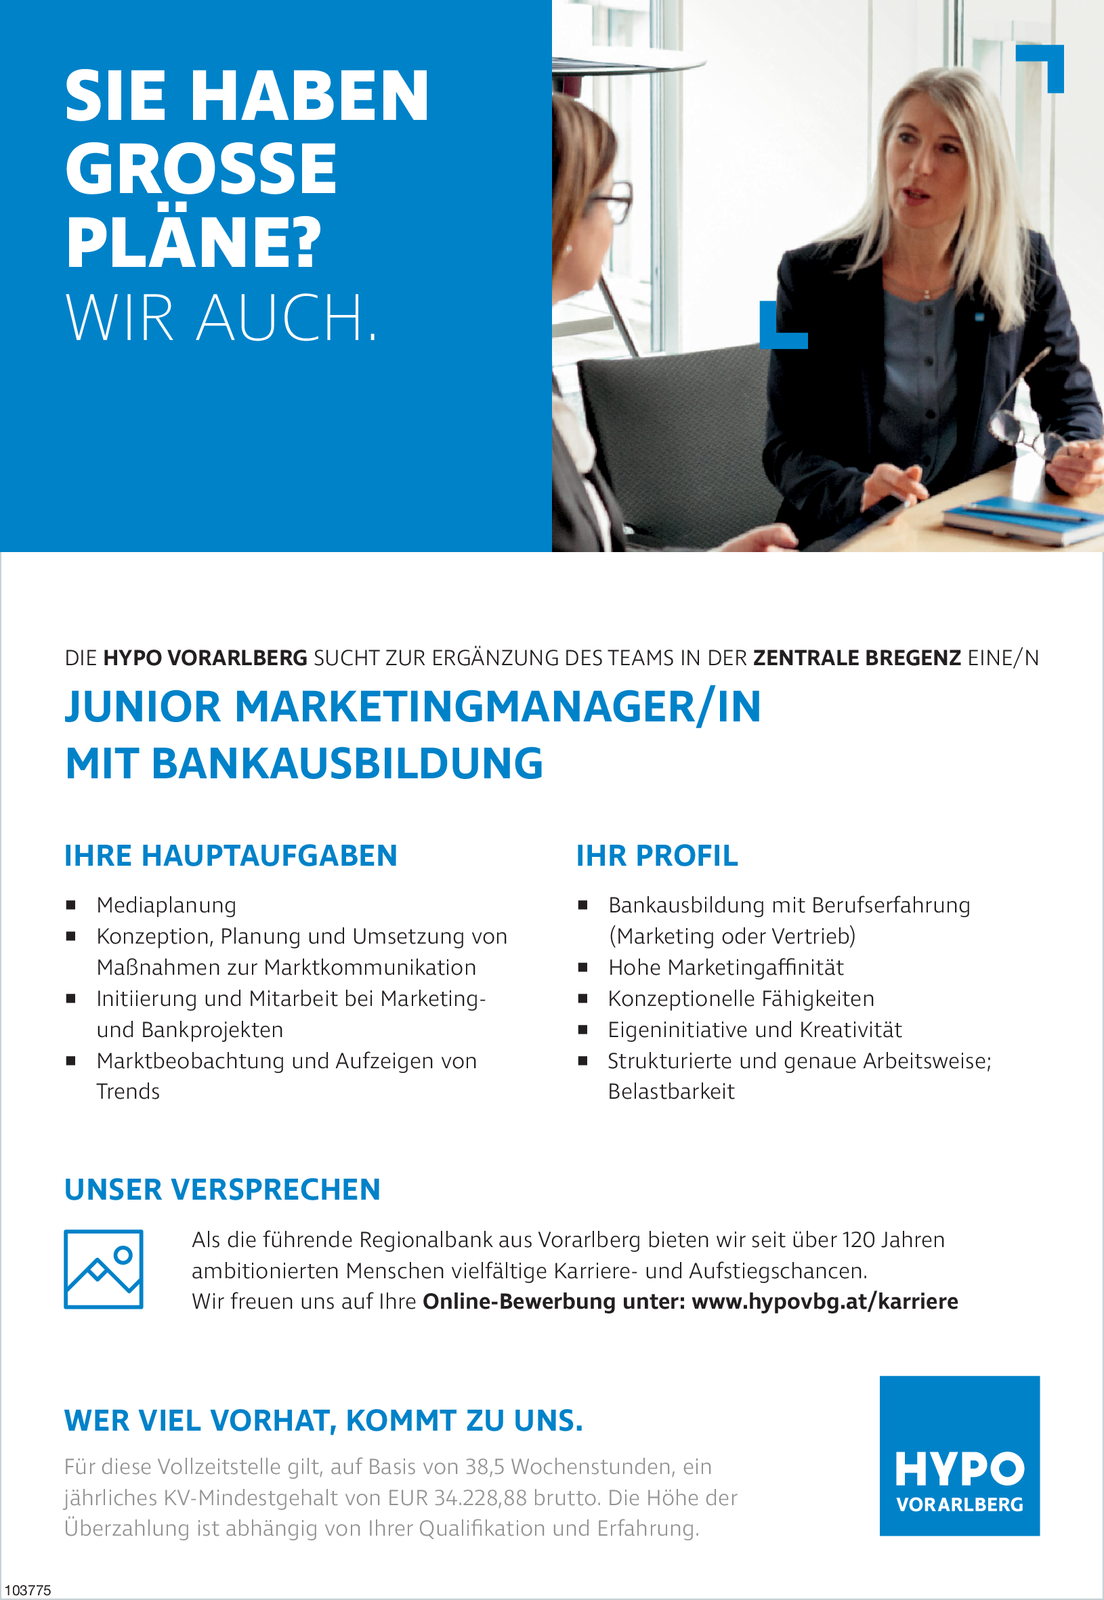 JUNIORMARKETINGMANAGER/IN MIT BANKAUSBILDUNG